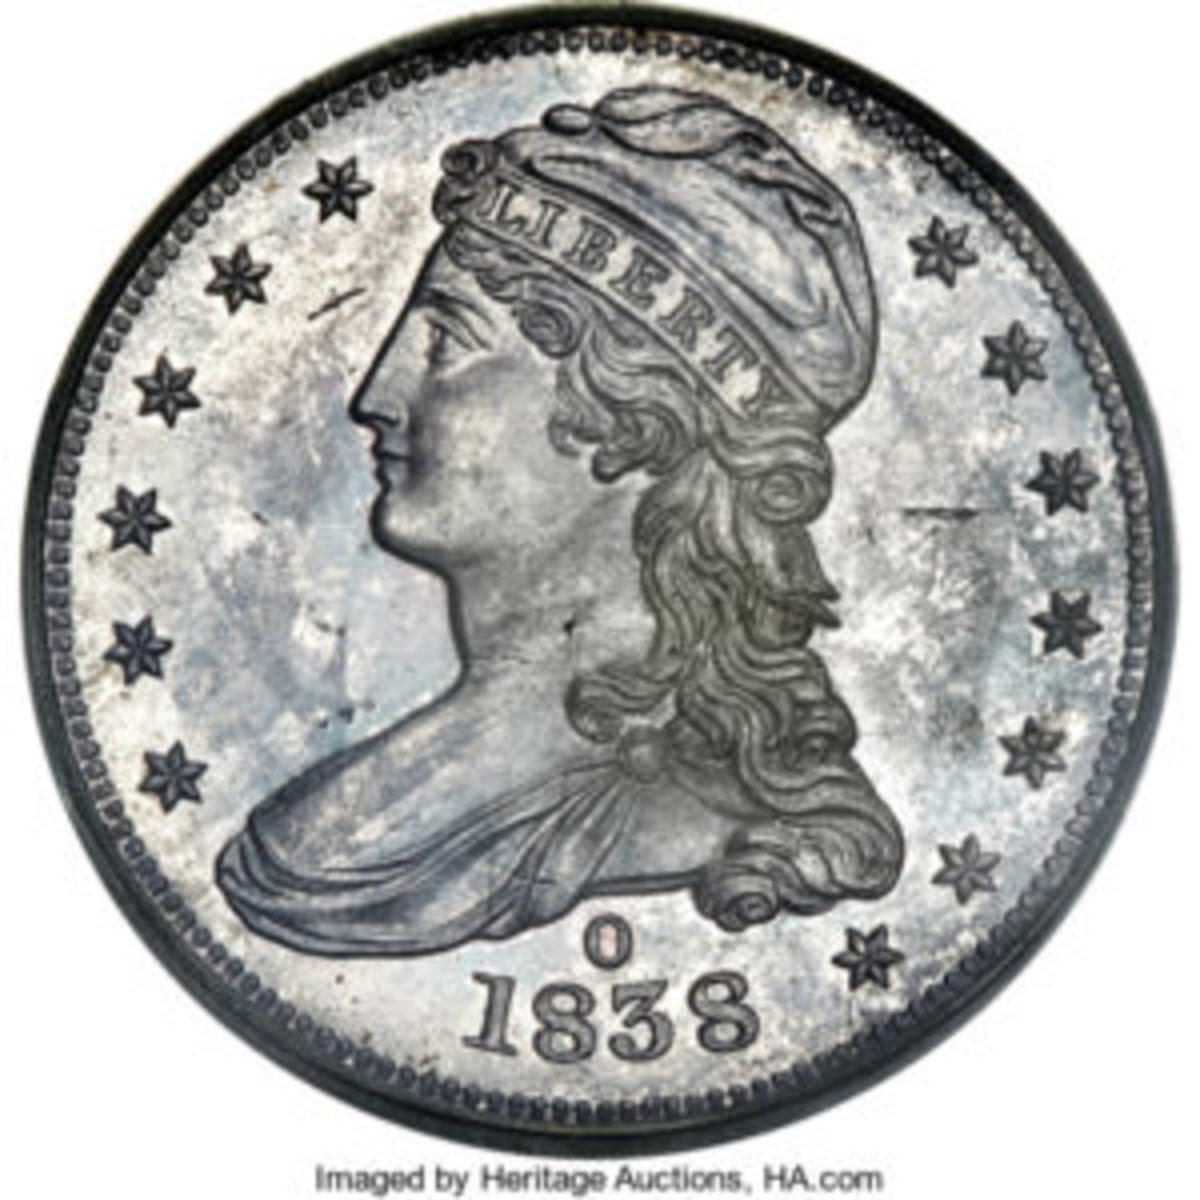 Reeded Edge Half Dollar